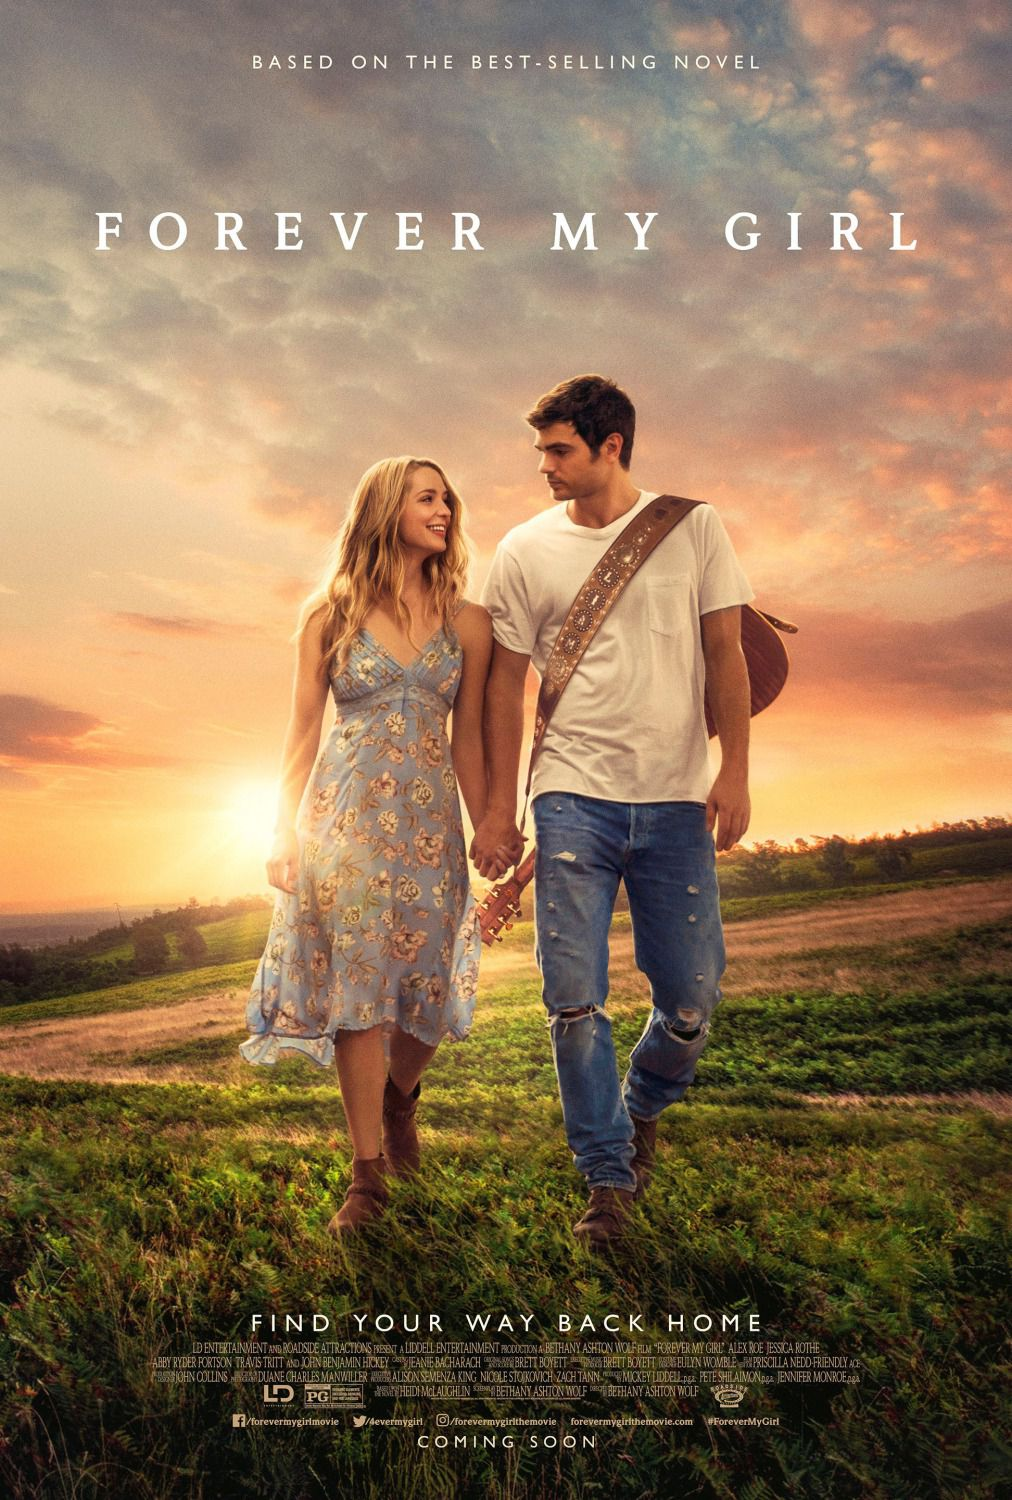 Forever my Girl - Alex Roe - Jessica Rothe - John Benjamin Hickey - Abby Ryder Fortson - film poster